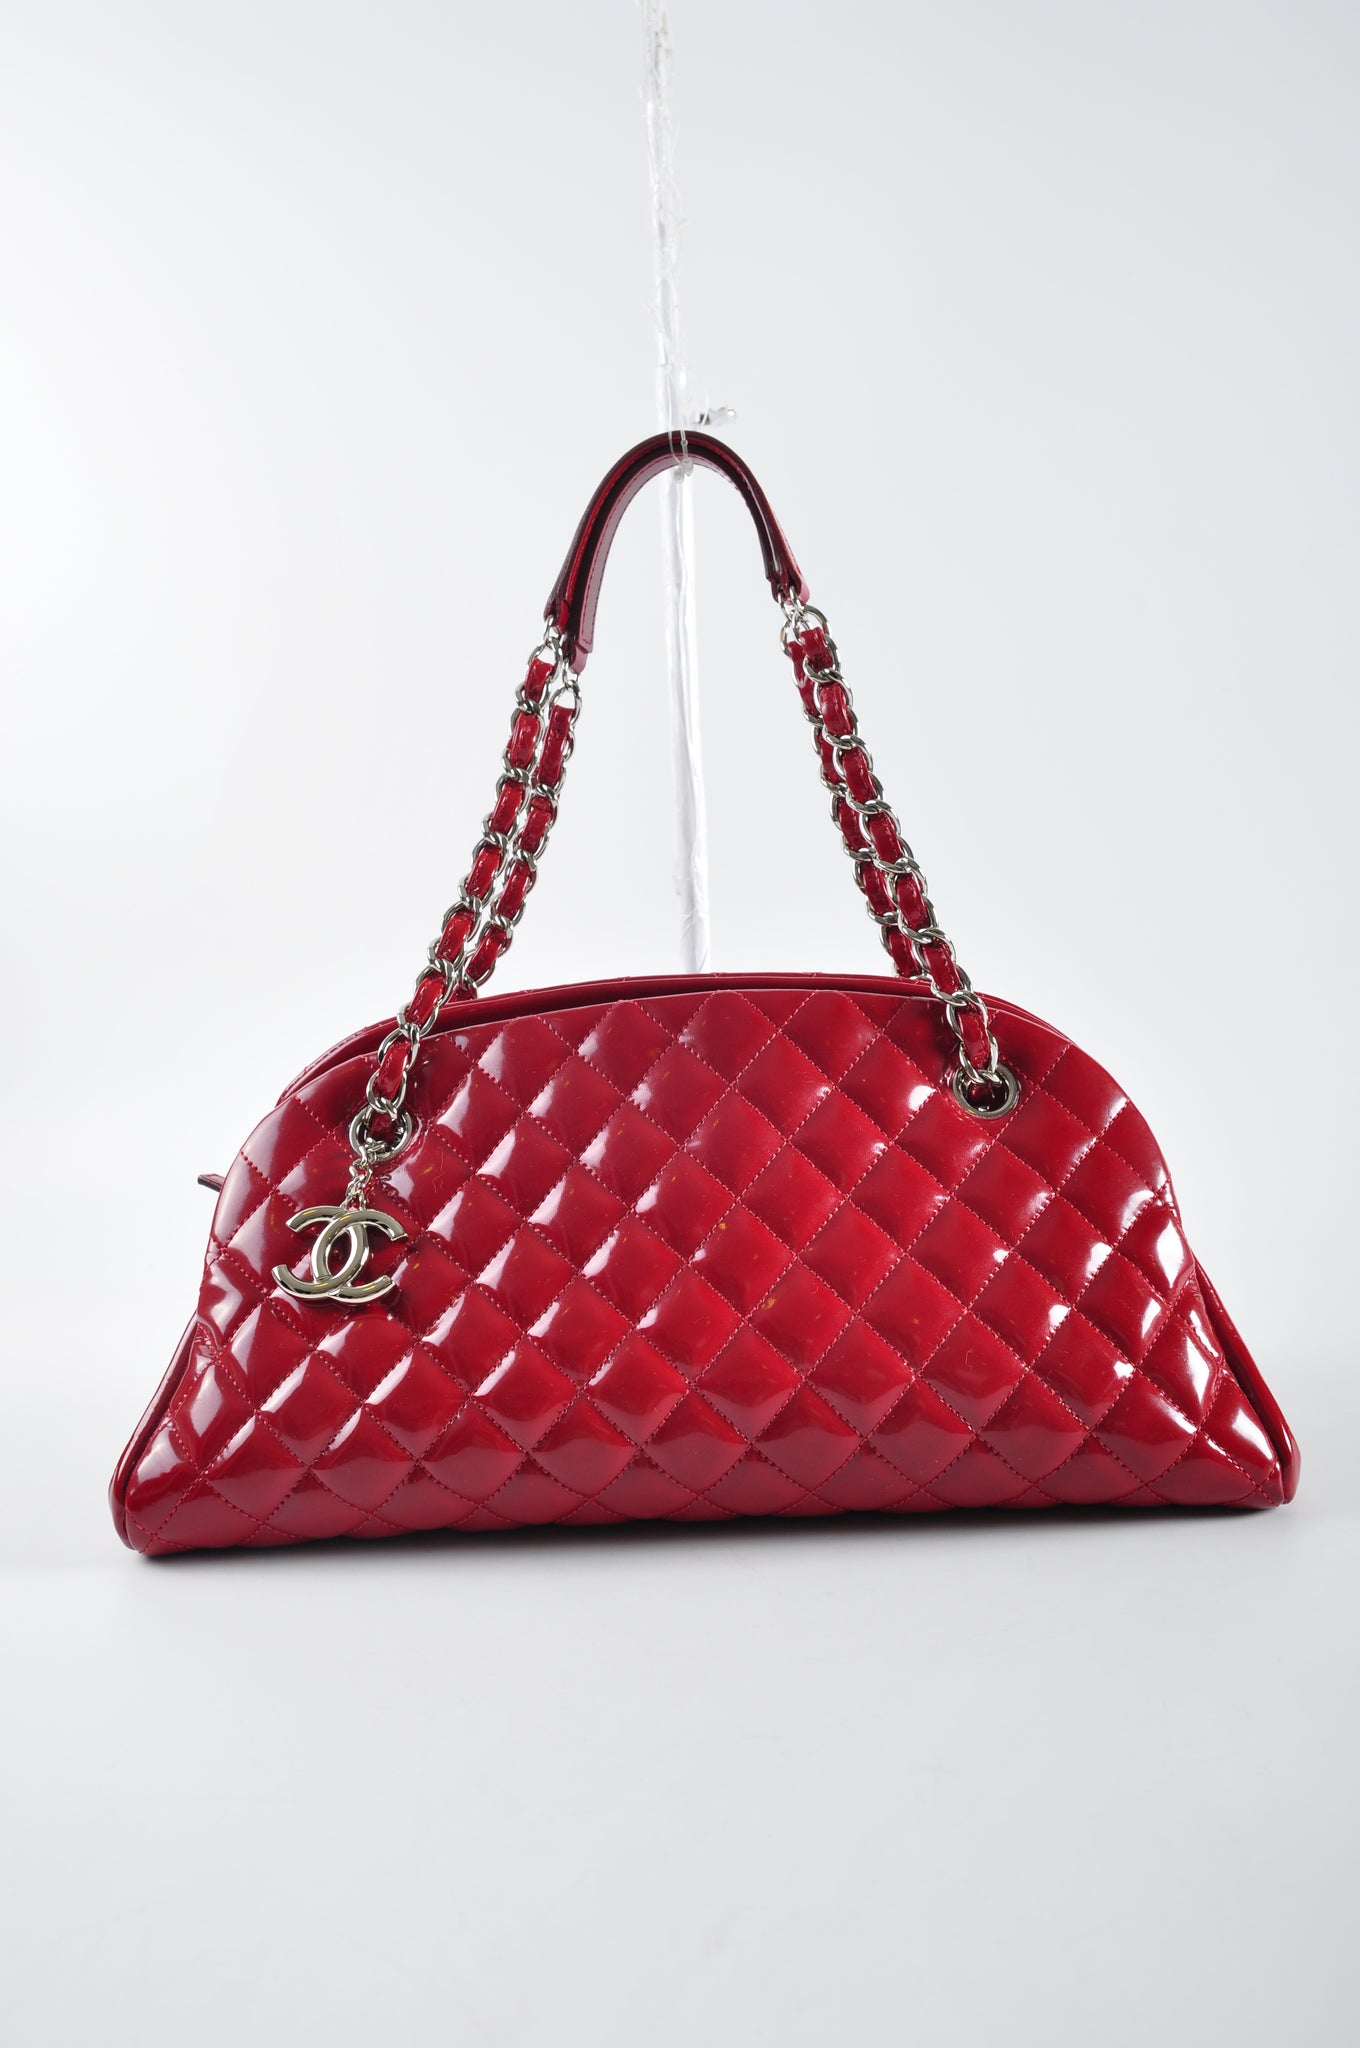 Chanel Mademoiselle Red Patent Bag SHW - Glampot